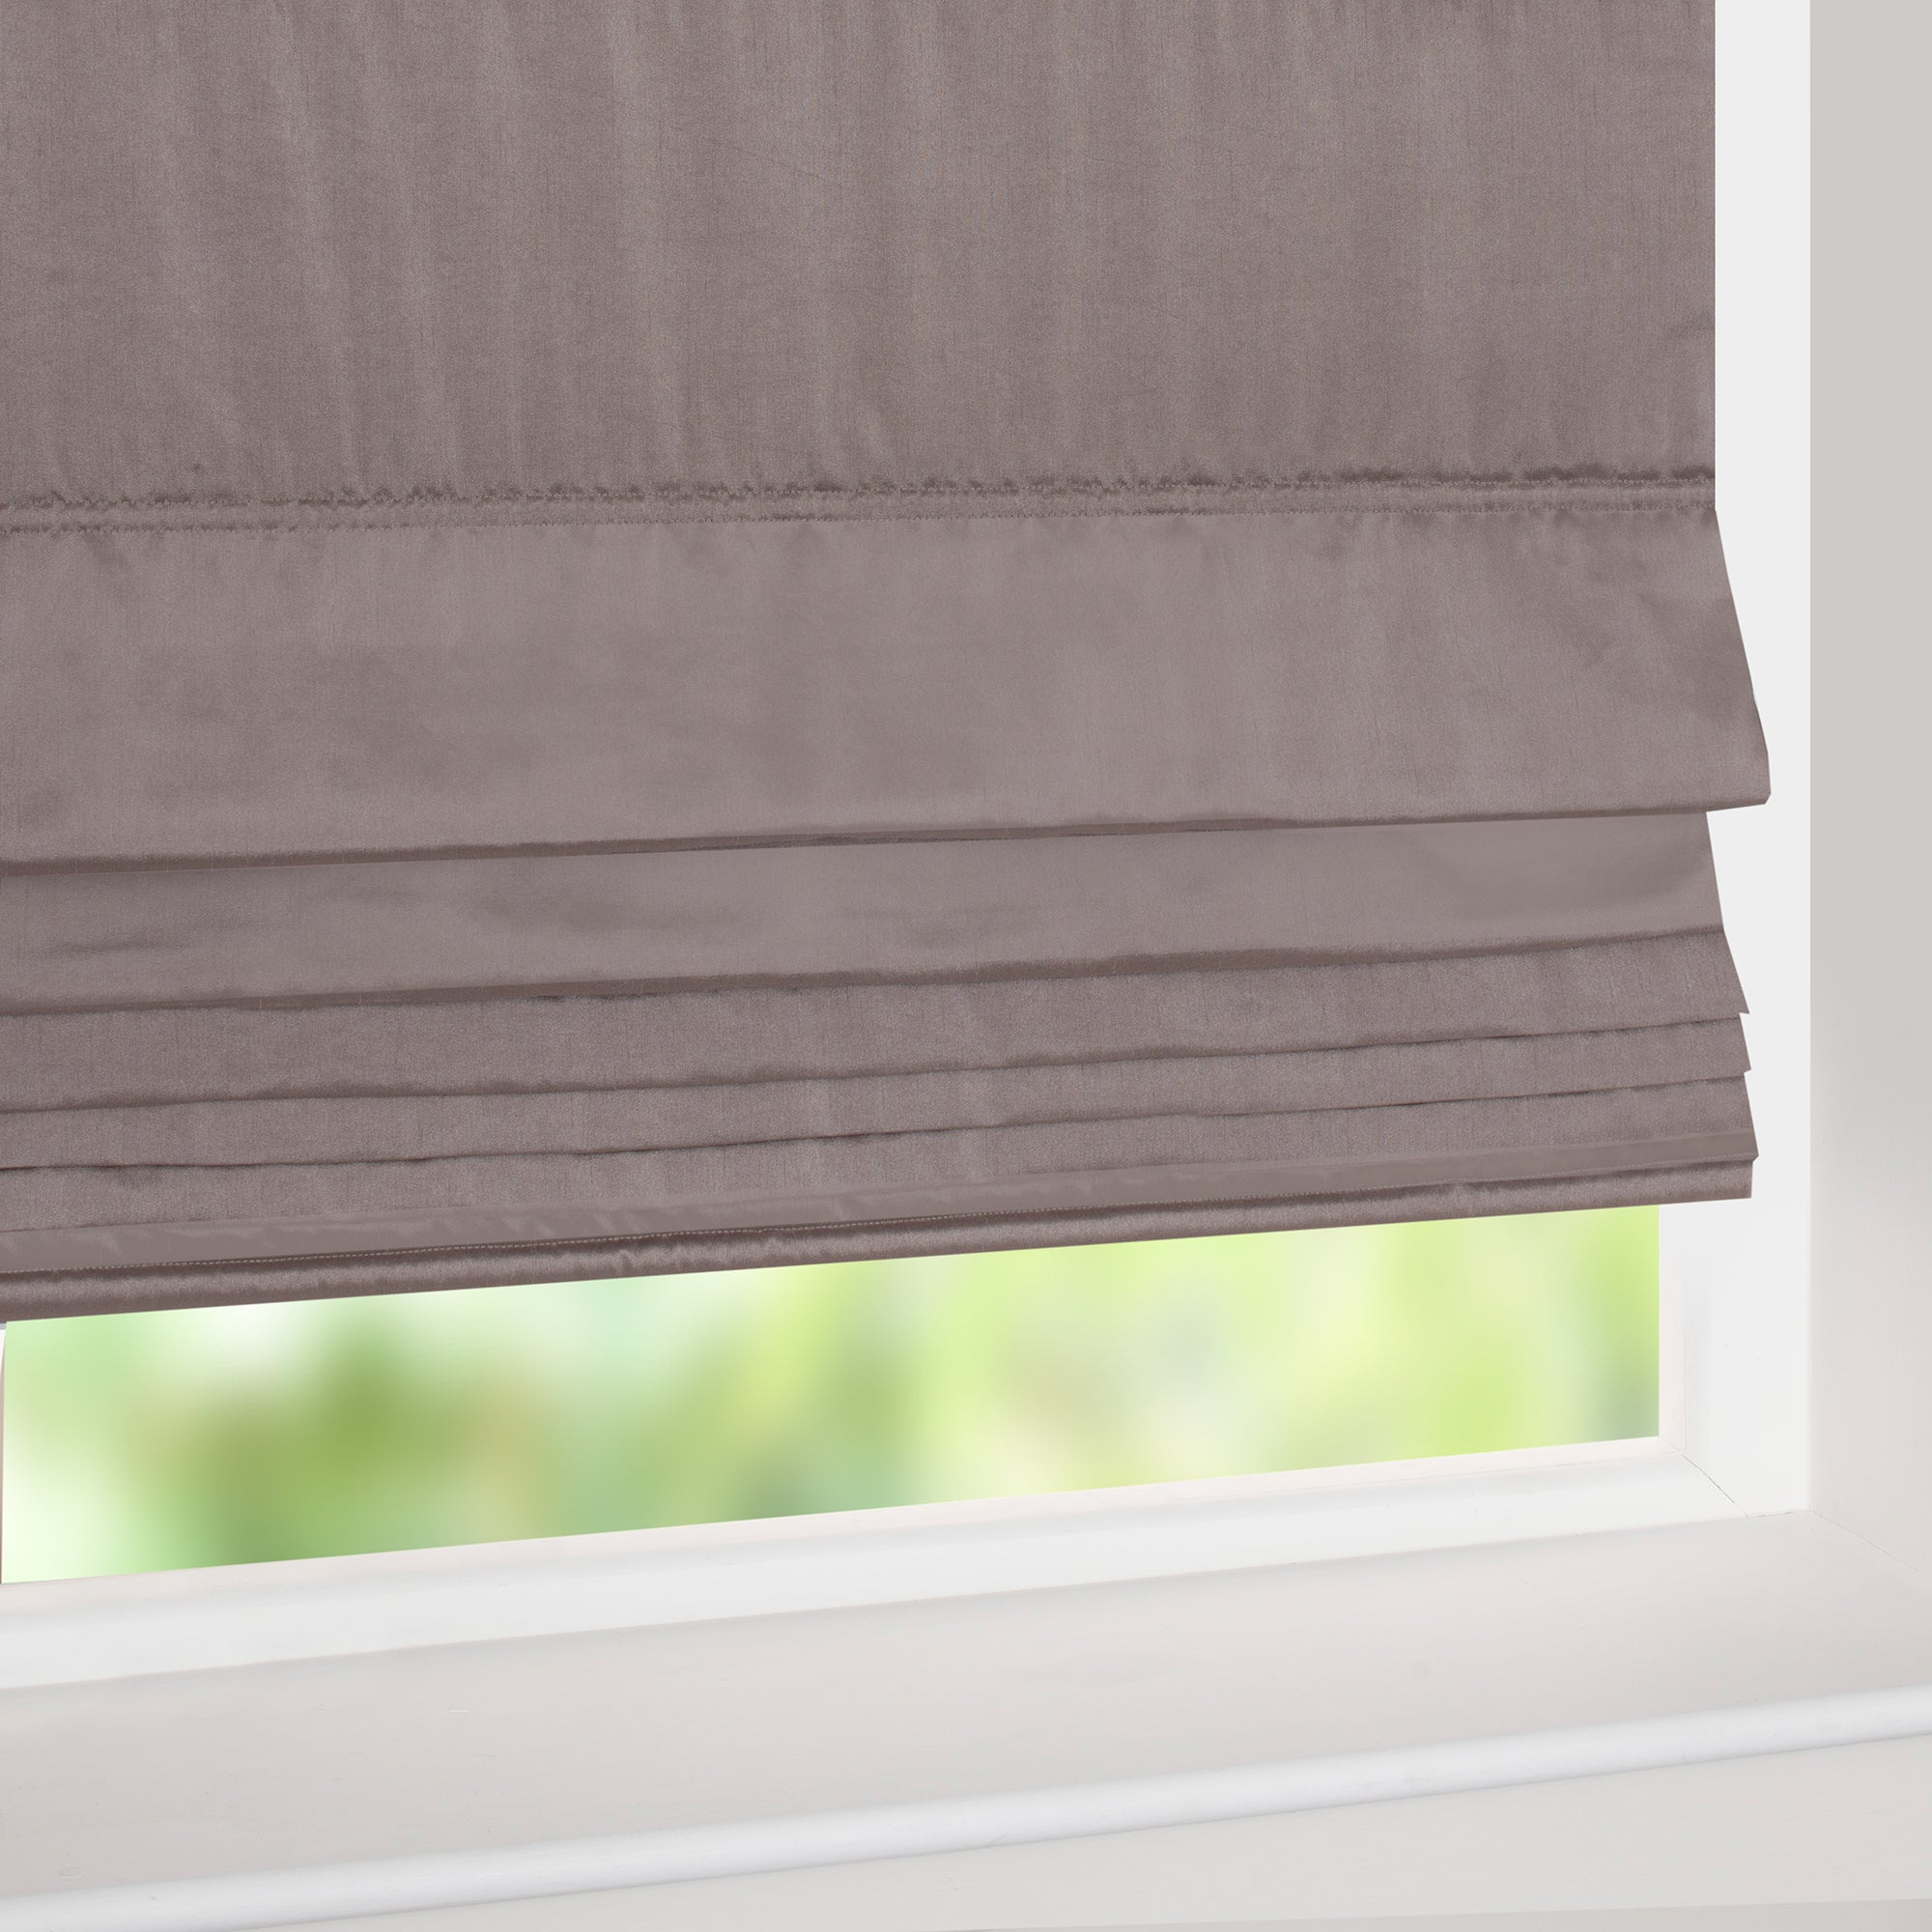 roman blinds shop for cheap curtains blinds and save. Black Bedroom Furniture Sets. Home Design Ideas